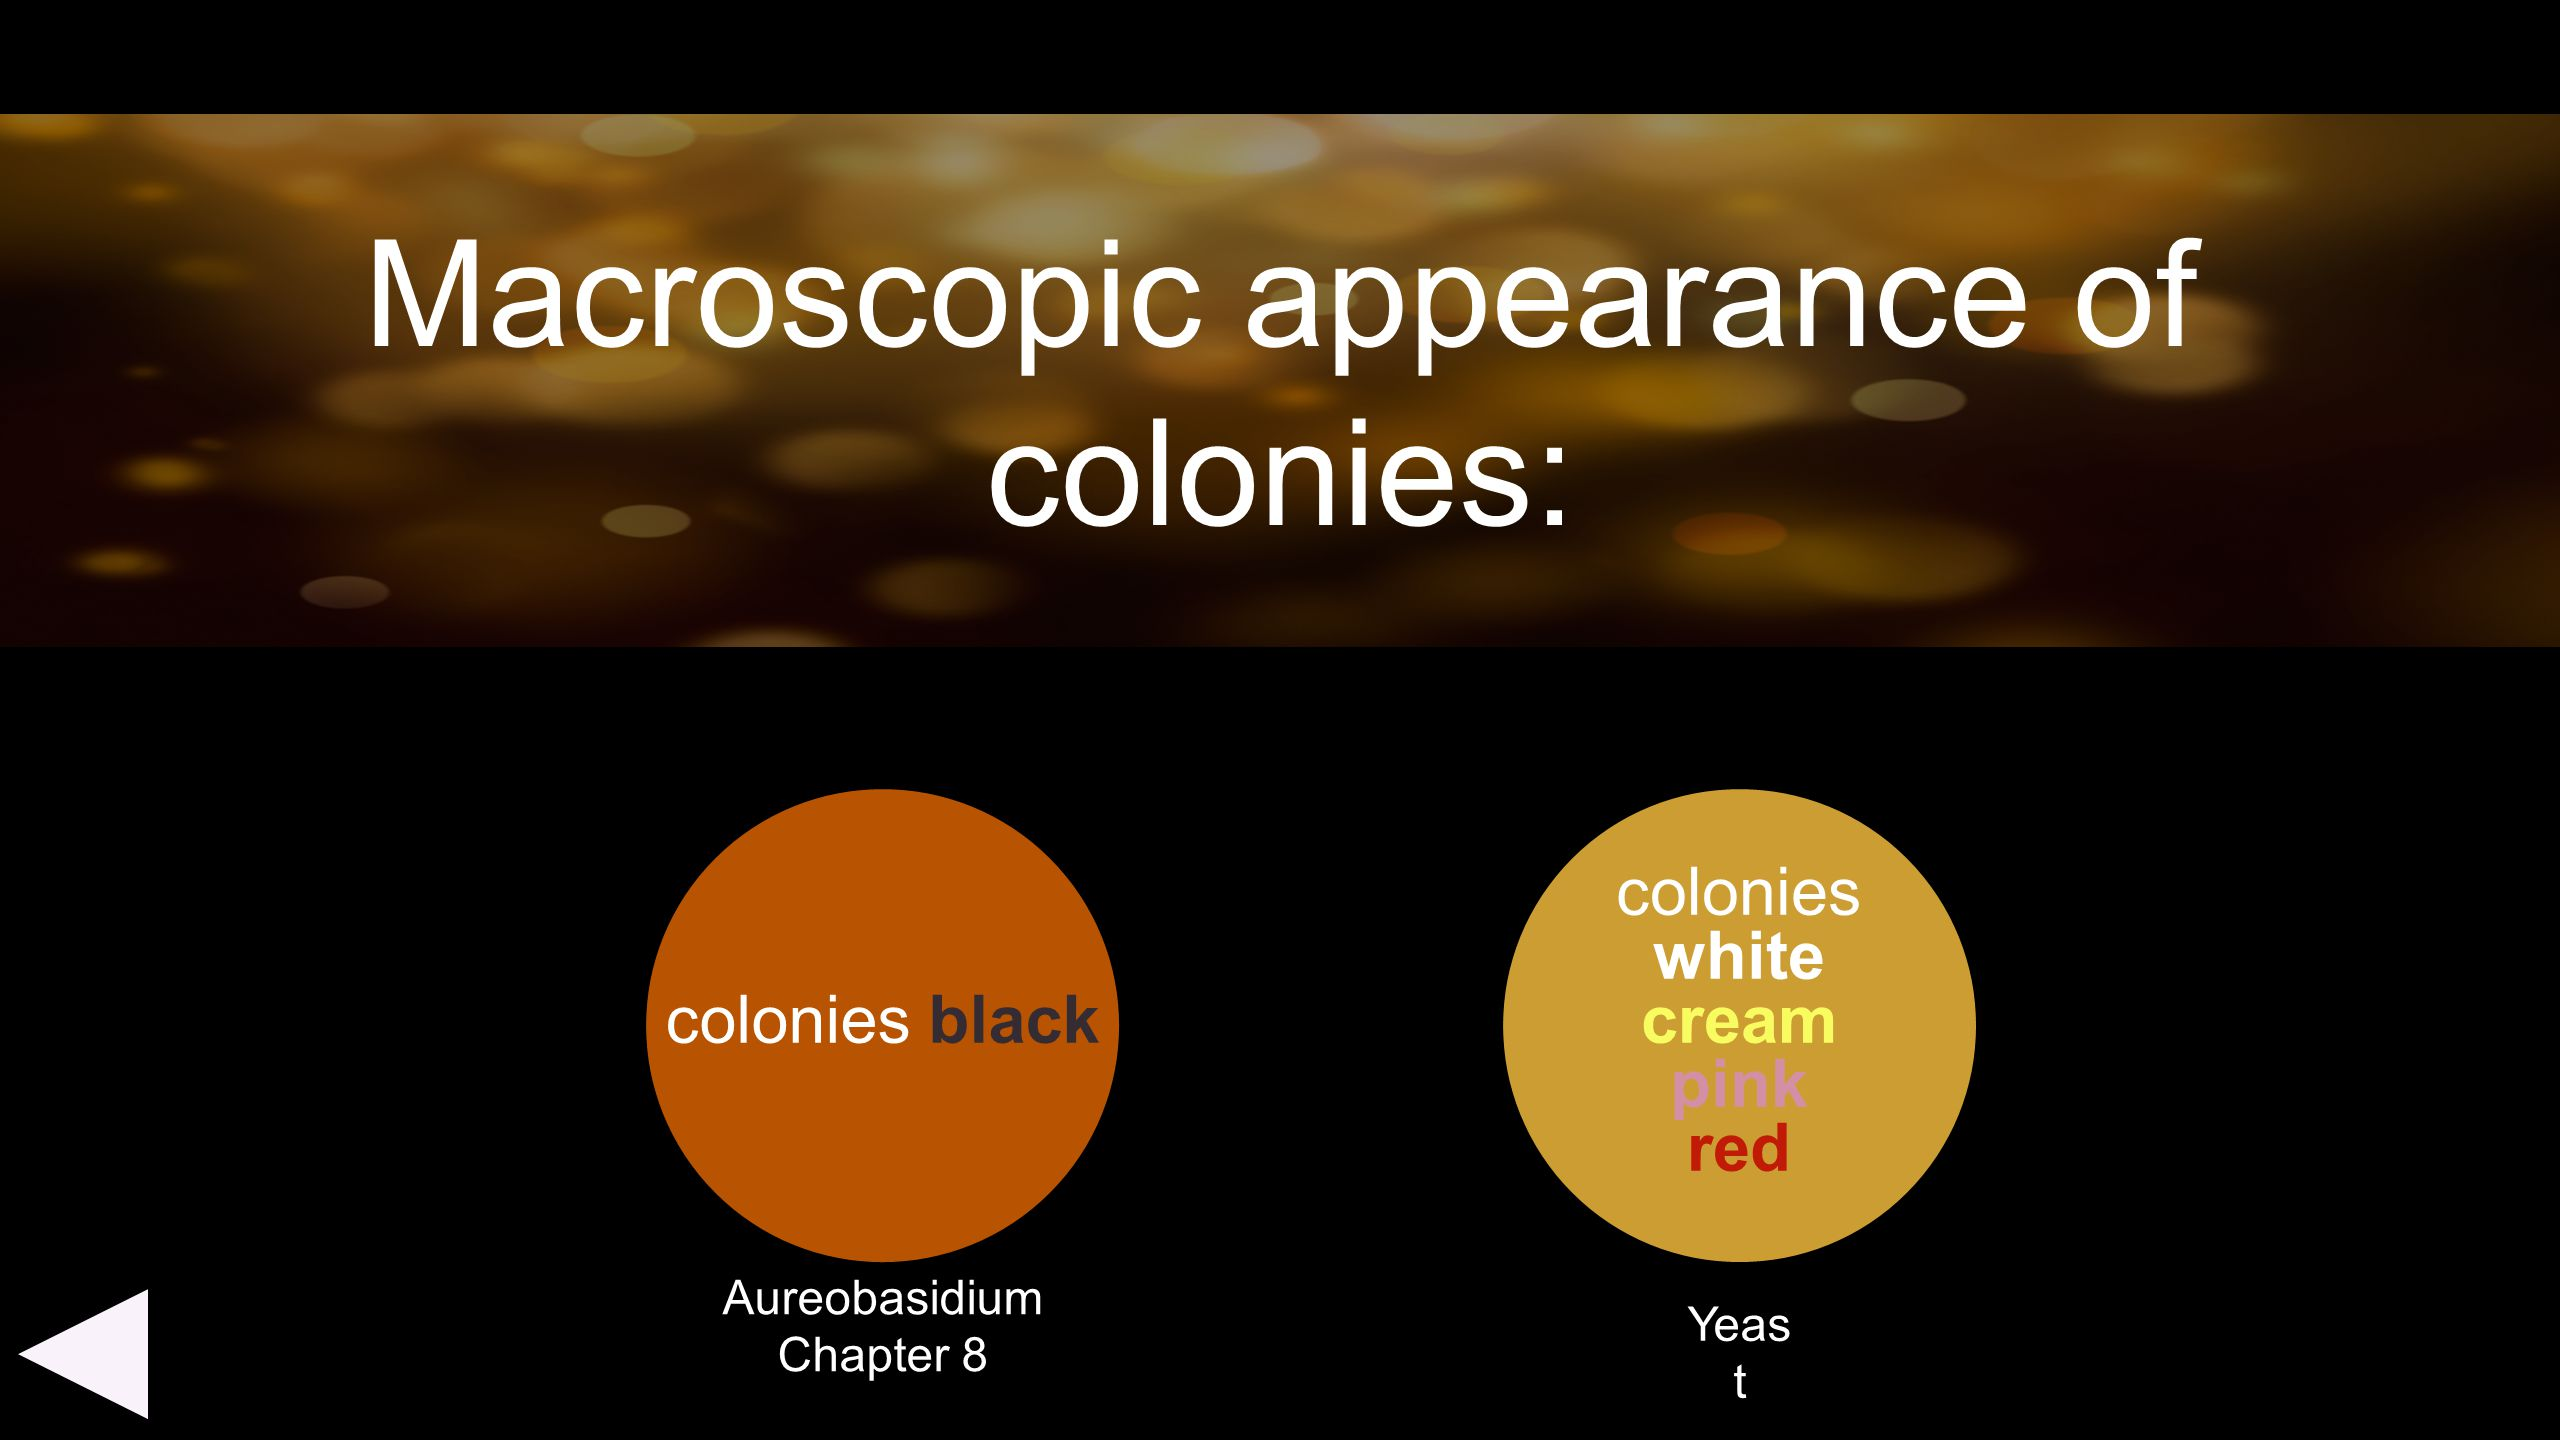 Macroscopic appearance of colonies: